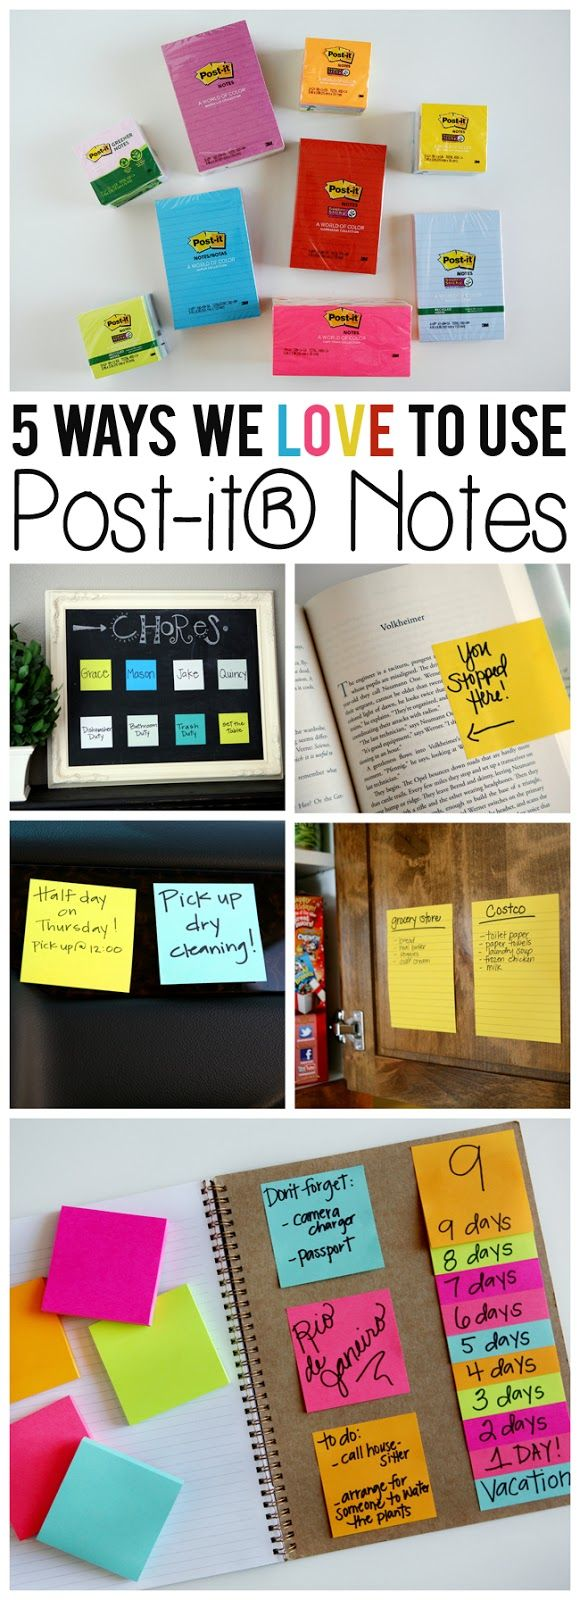 Five Ways We Love To Use Post-it® Notes - @postitproducts